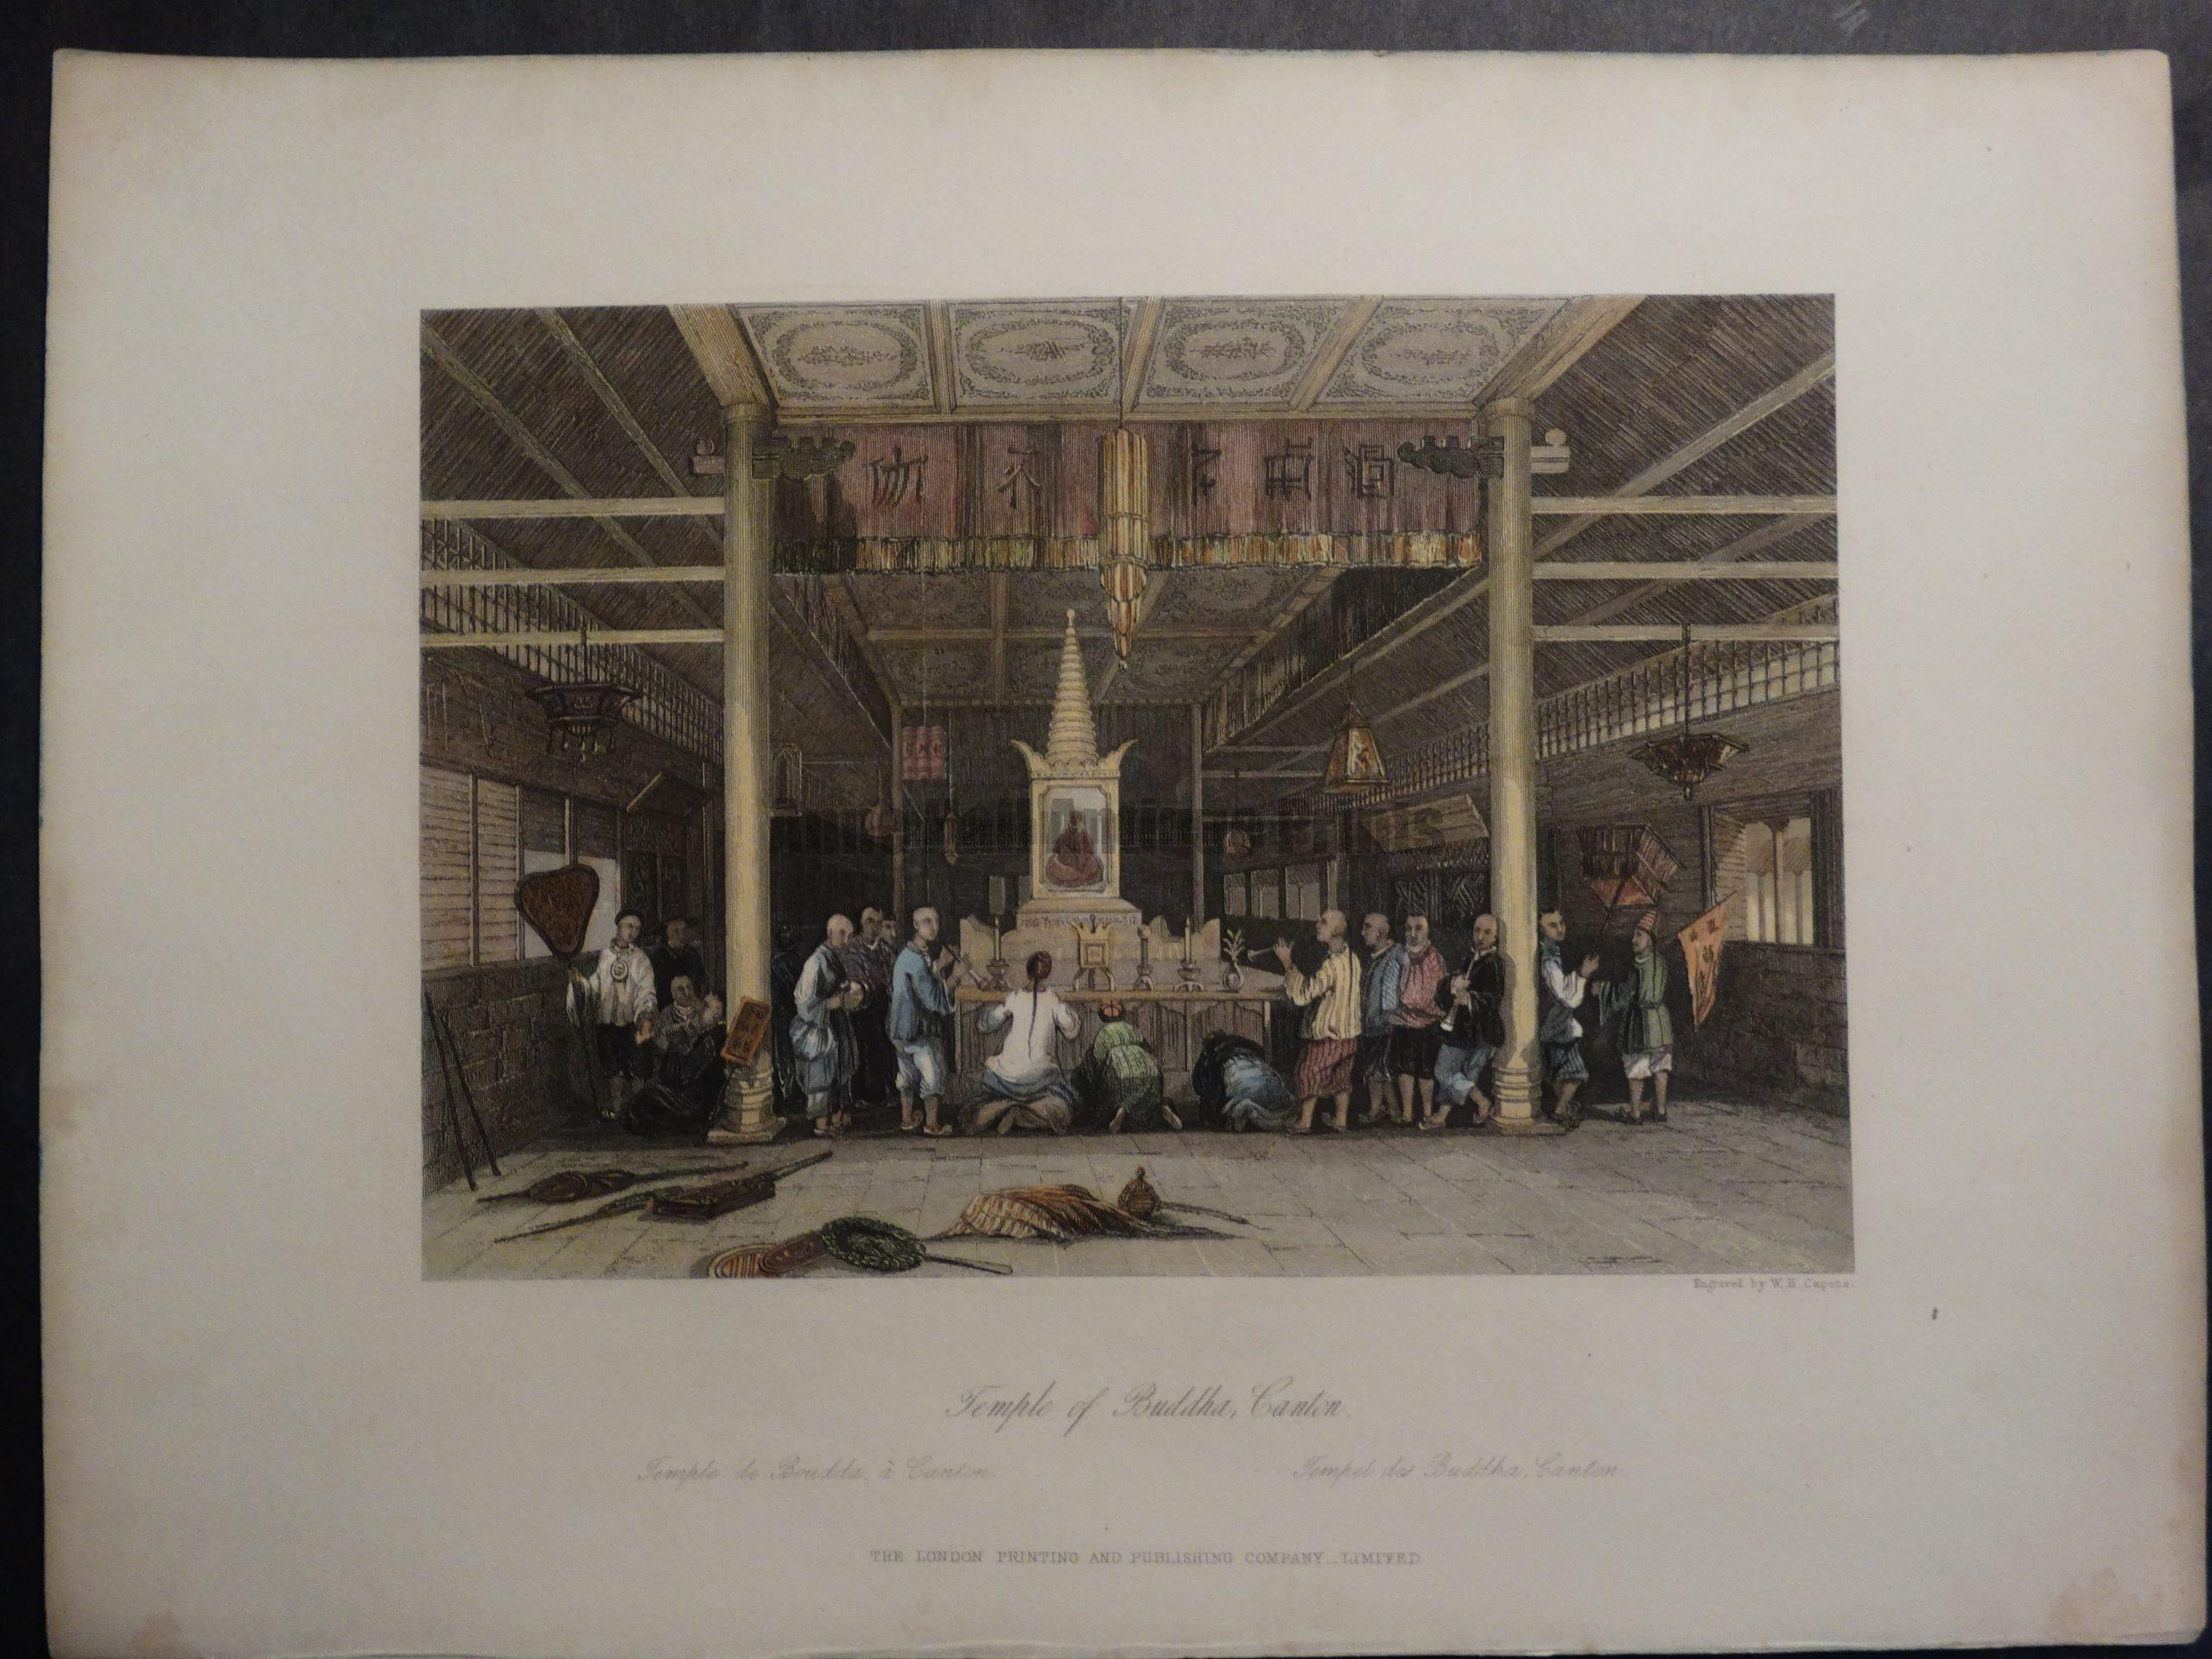 DSC02403 Temple of Buddah, Canton by Allom. 1855 Hand colored engraving. $150.